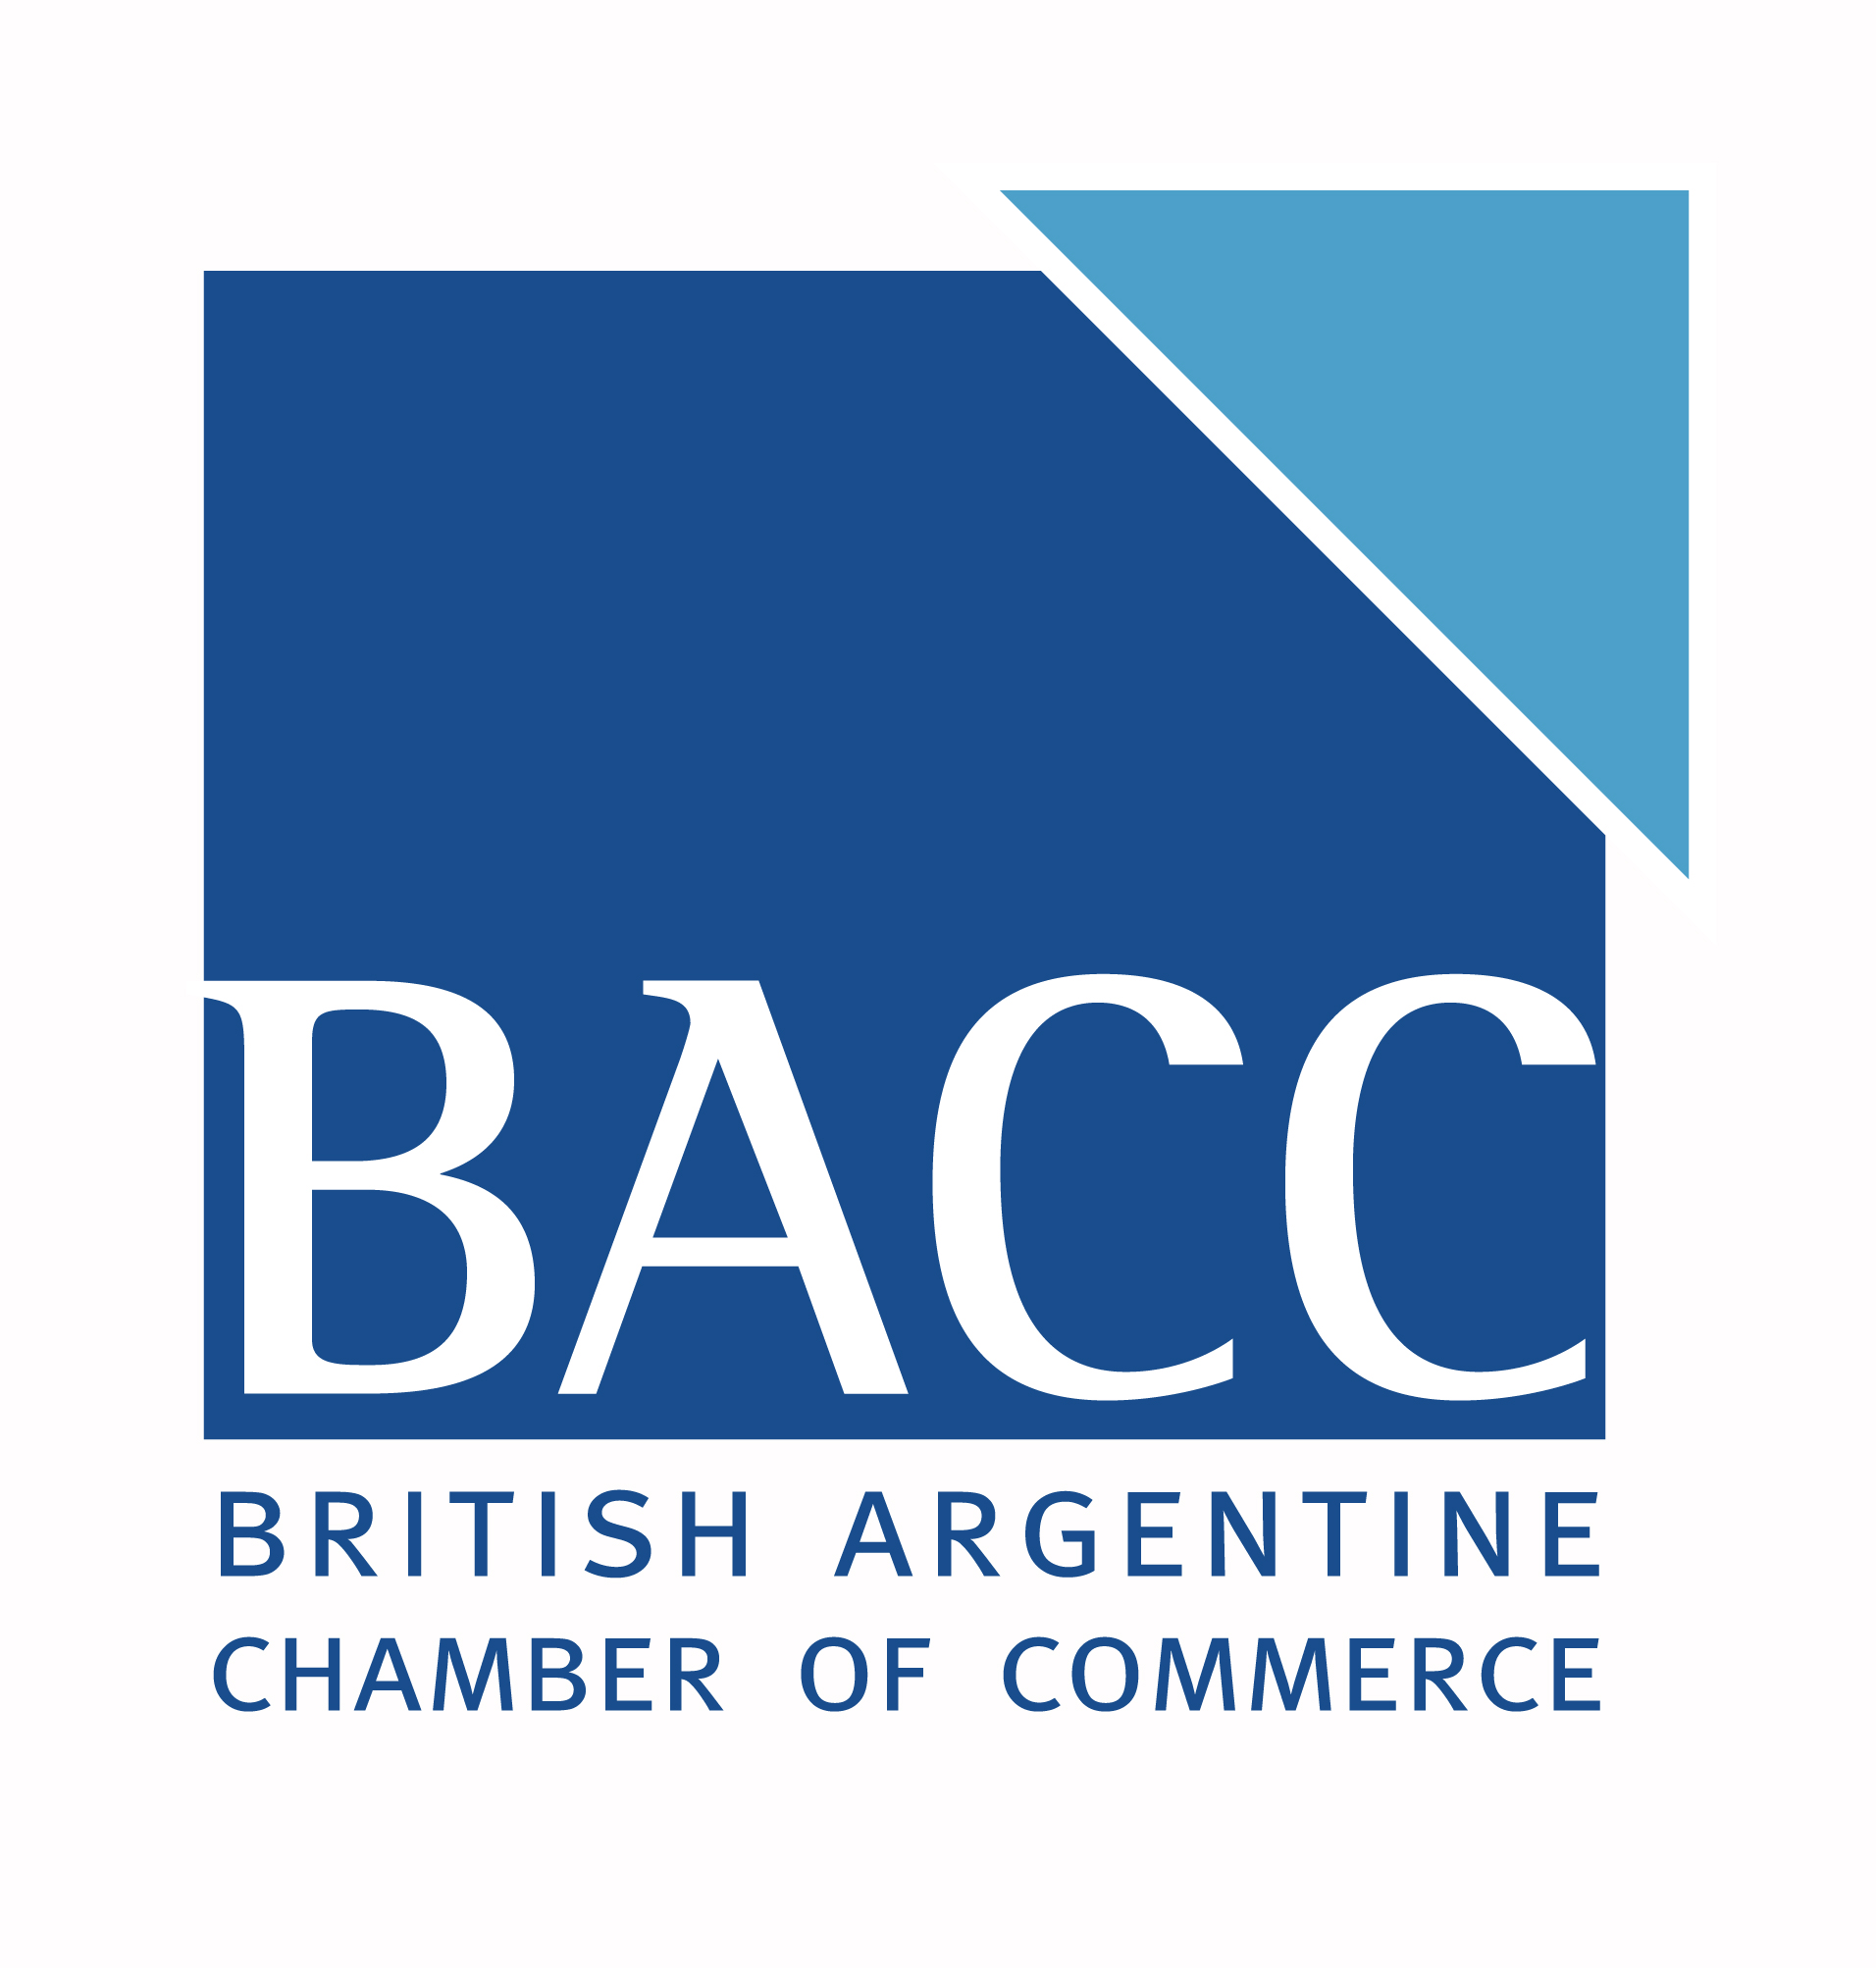 The British Argentine Chamber of Commerce